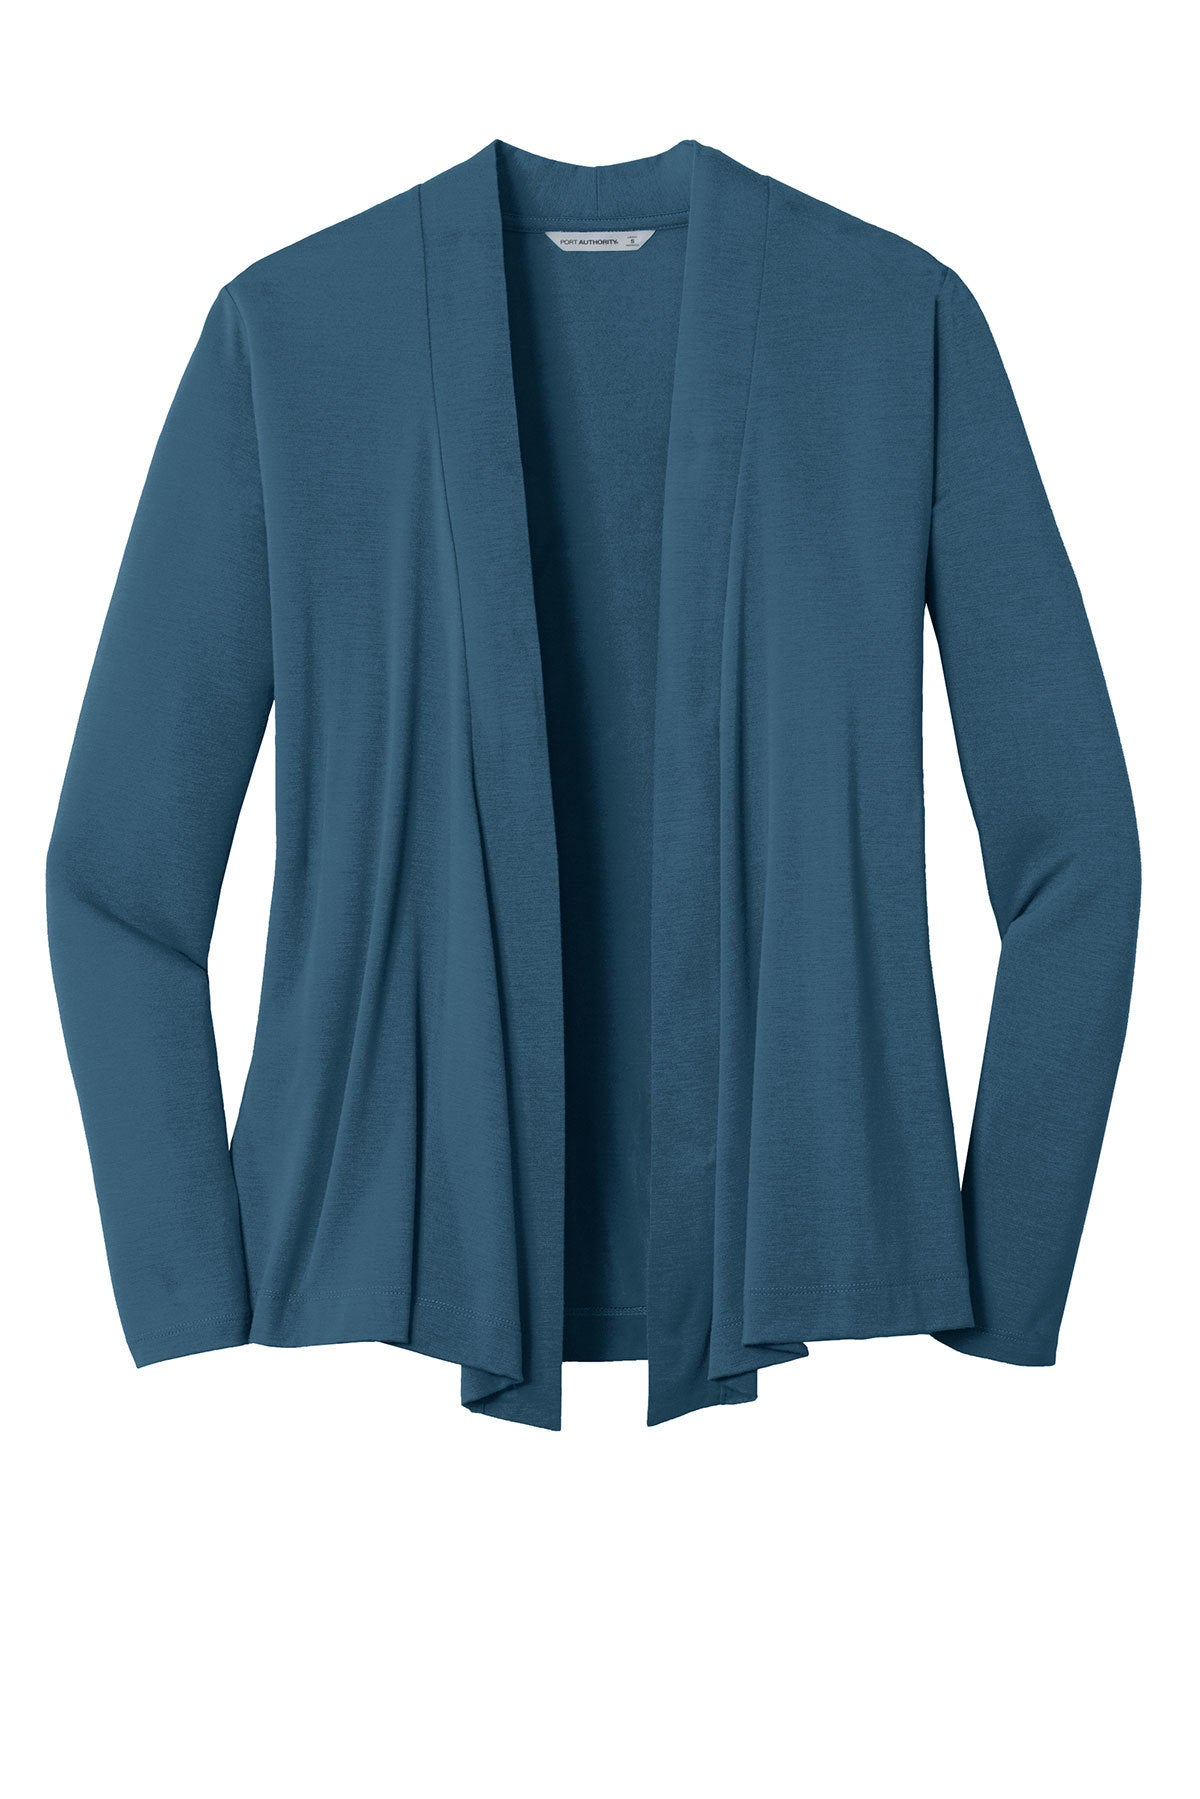 f35772fd8 Port Authority® Ladies Concept Knit Cardigan – Summit Medical Group ...